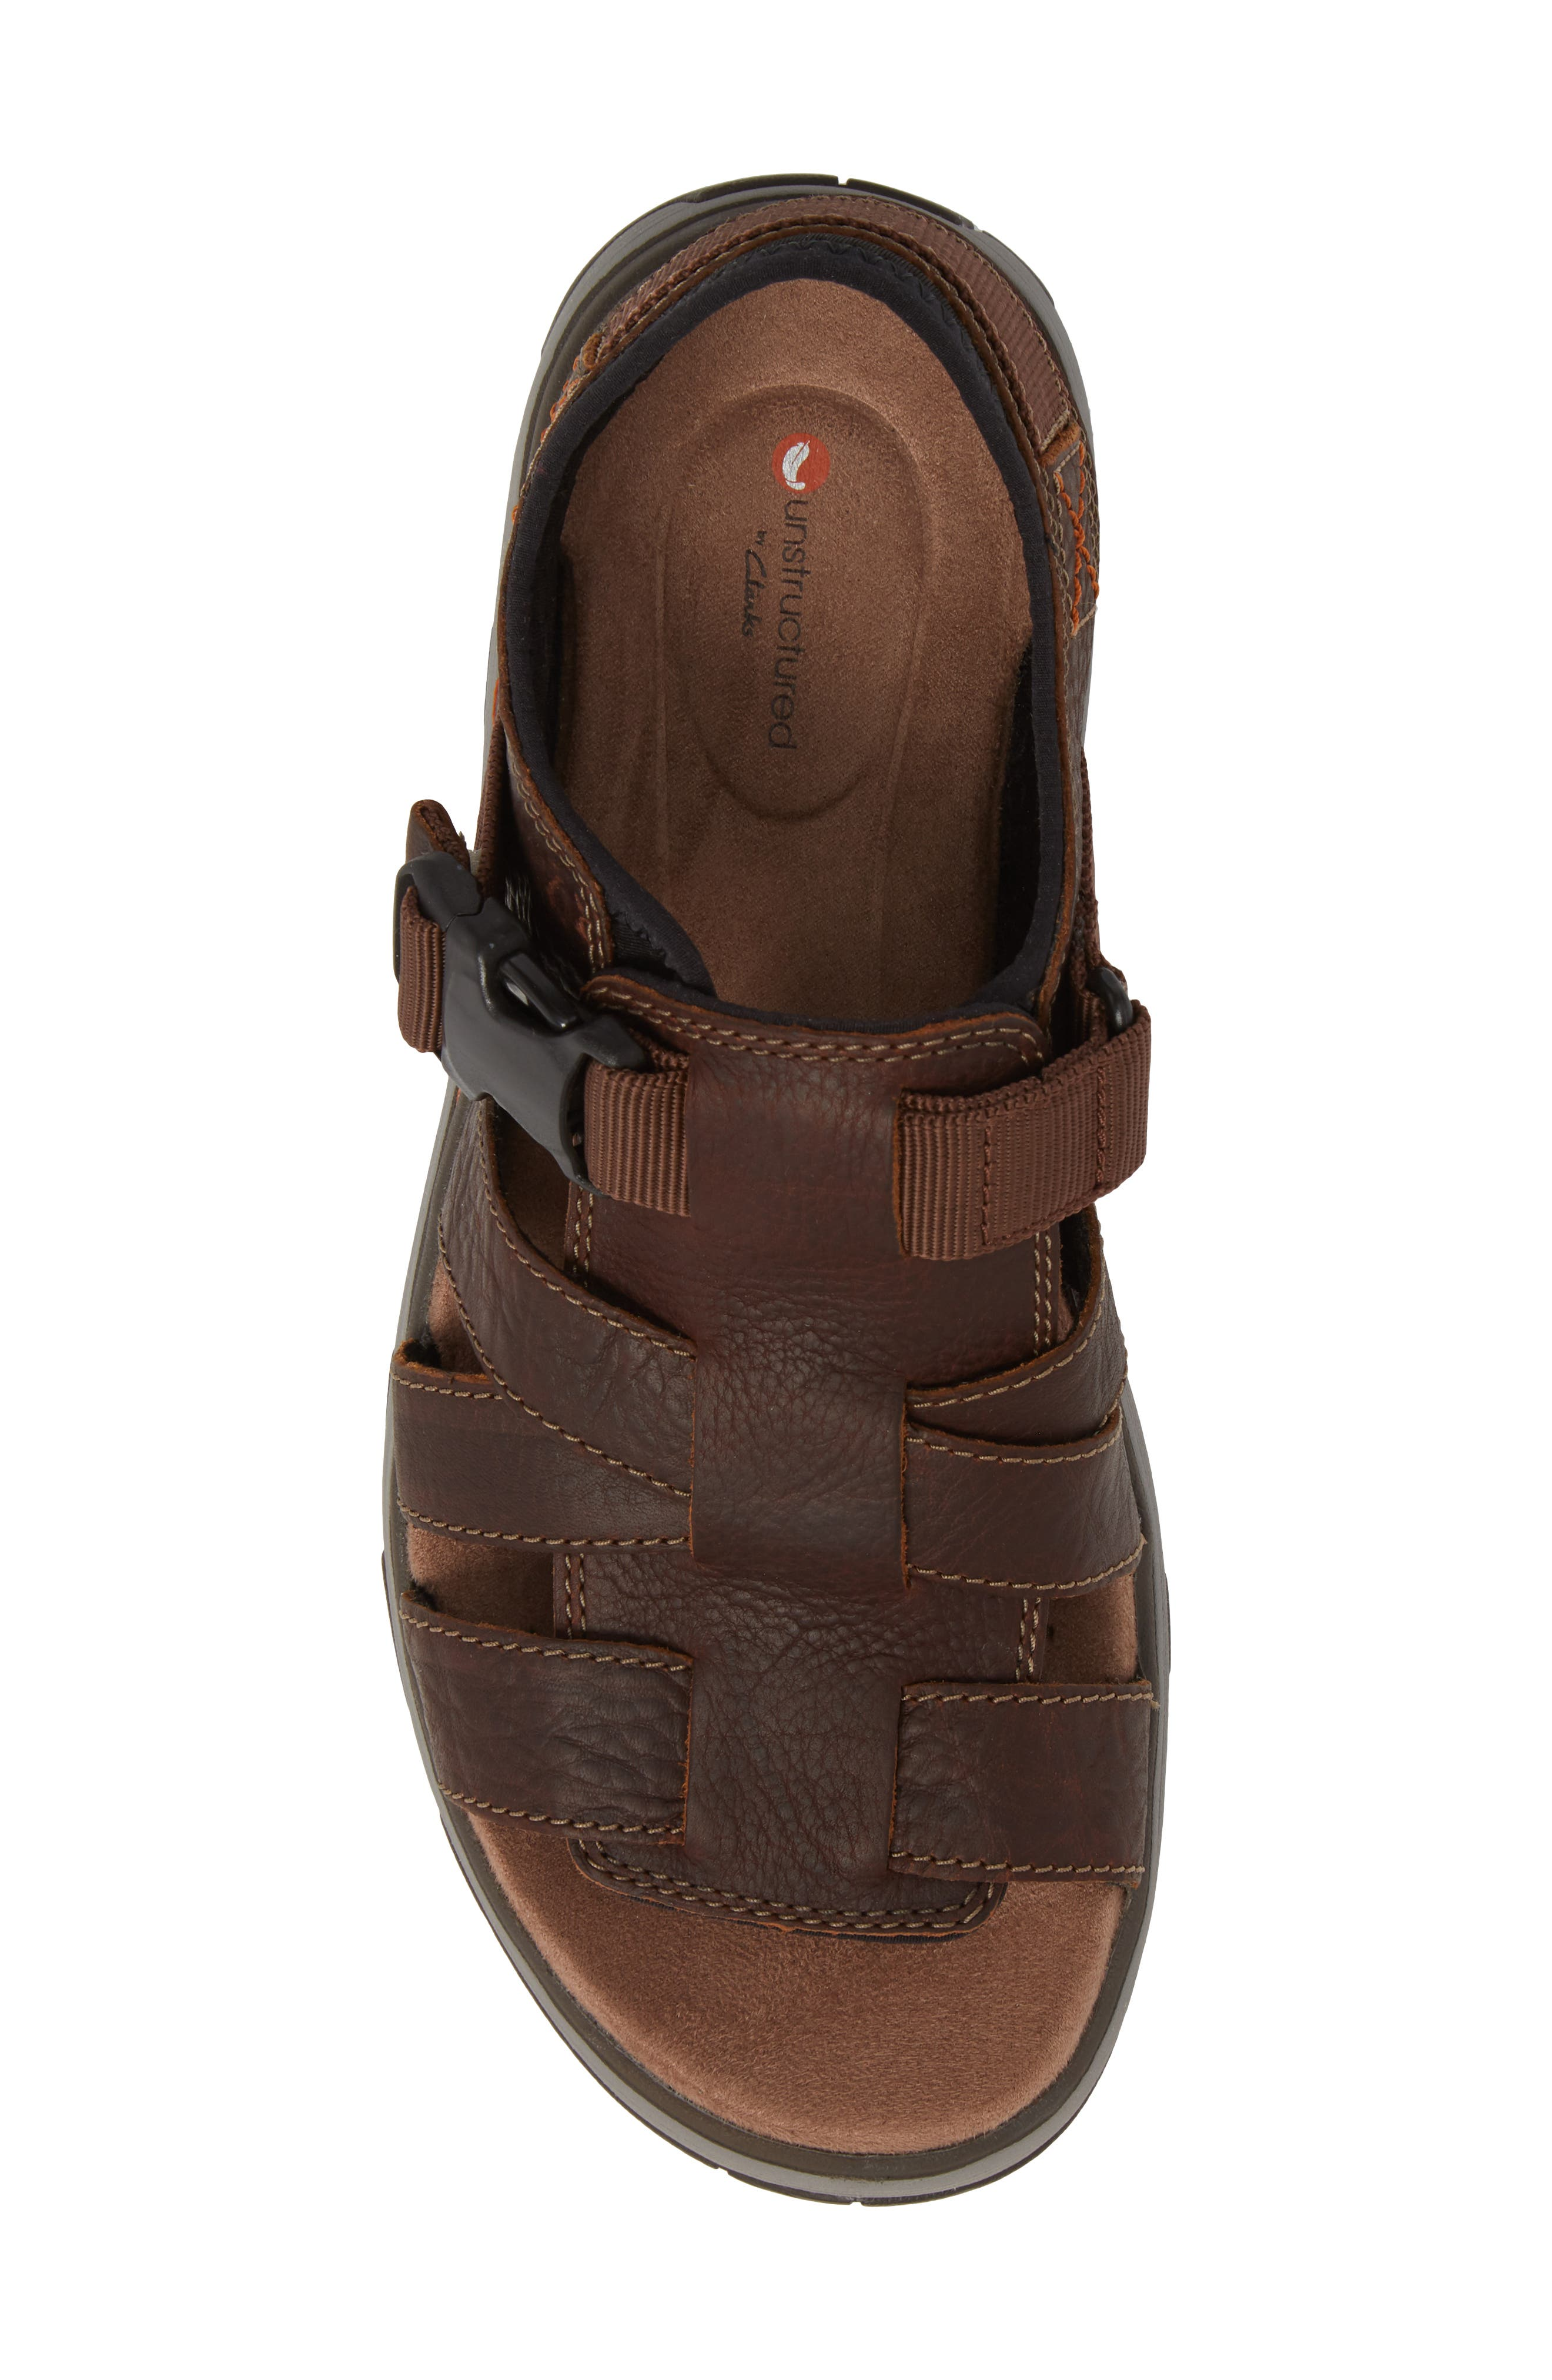 Clarks<sup>®</sup> Untrek Cove Fisherman Sandal,                             Alternate thumbnail 9, color,